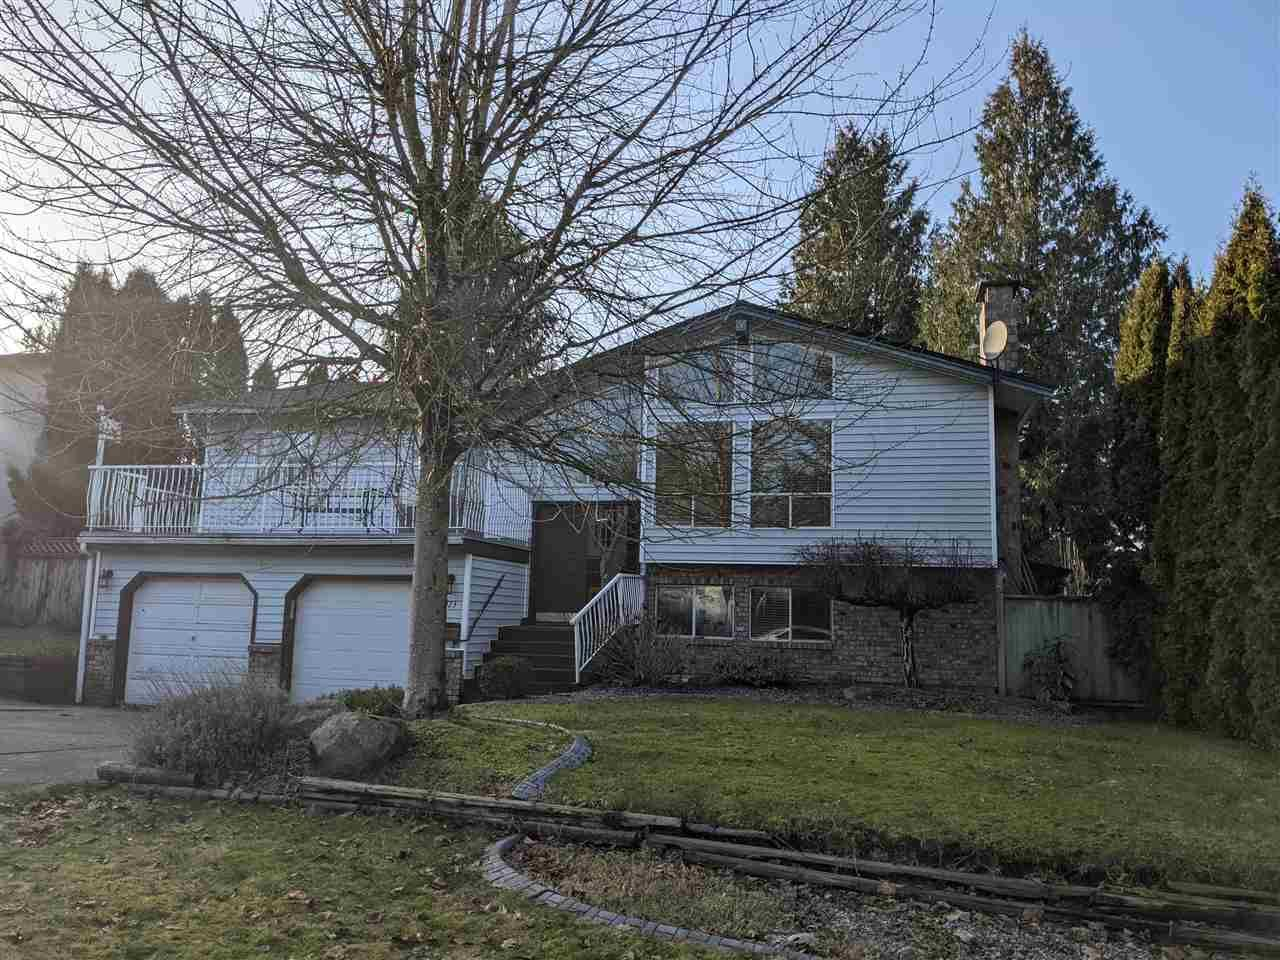 Main Photo: 3723 DAVIE STREET in Abbotsford: Abbotsford East House for sale : MLS®# R2530964